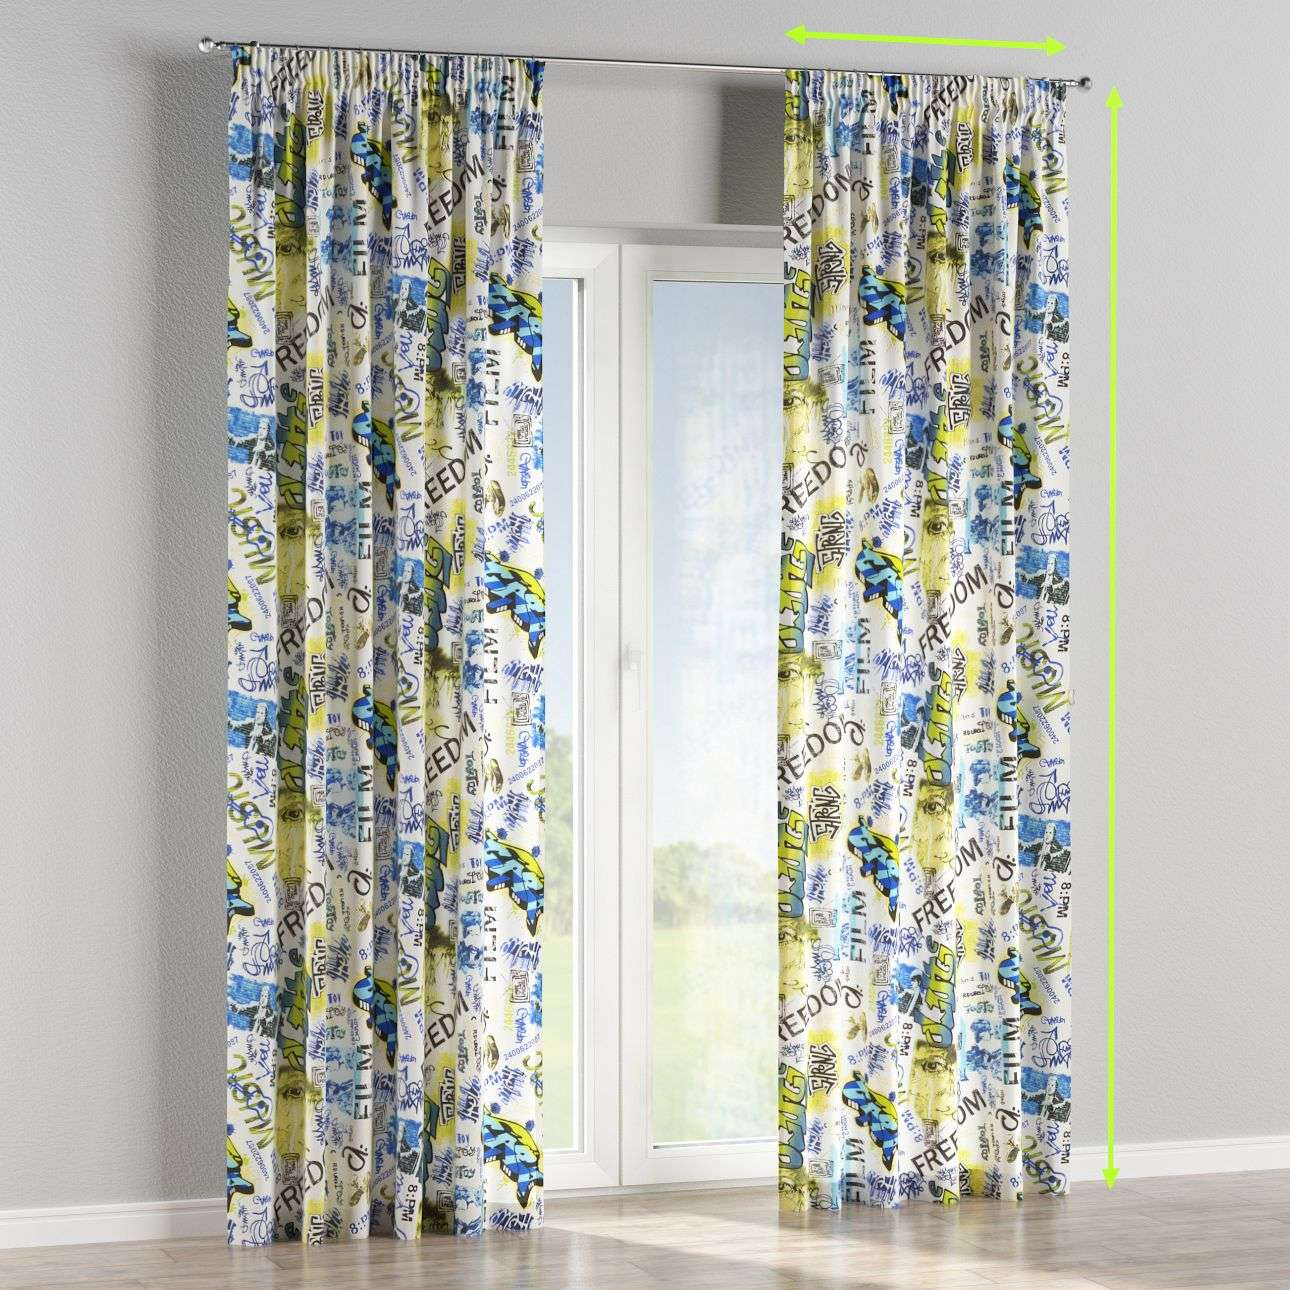 Pencil pleat curtains in collection Freestyle, fabric: 135-08